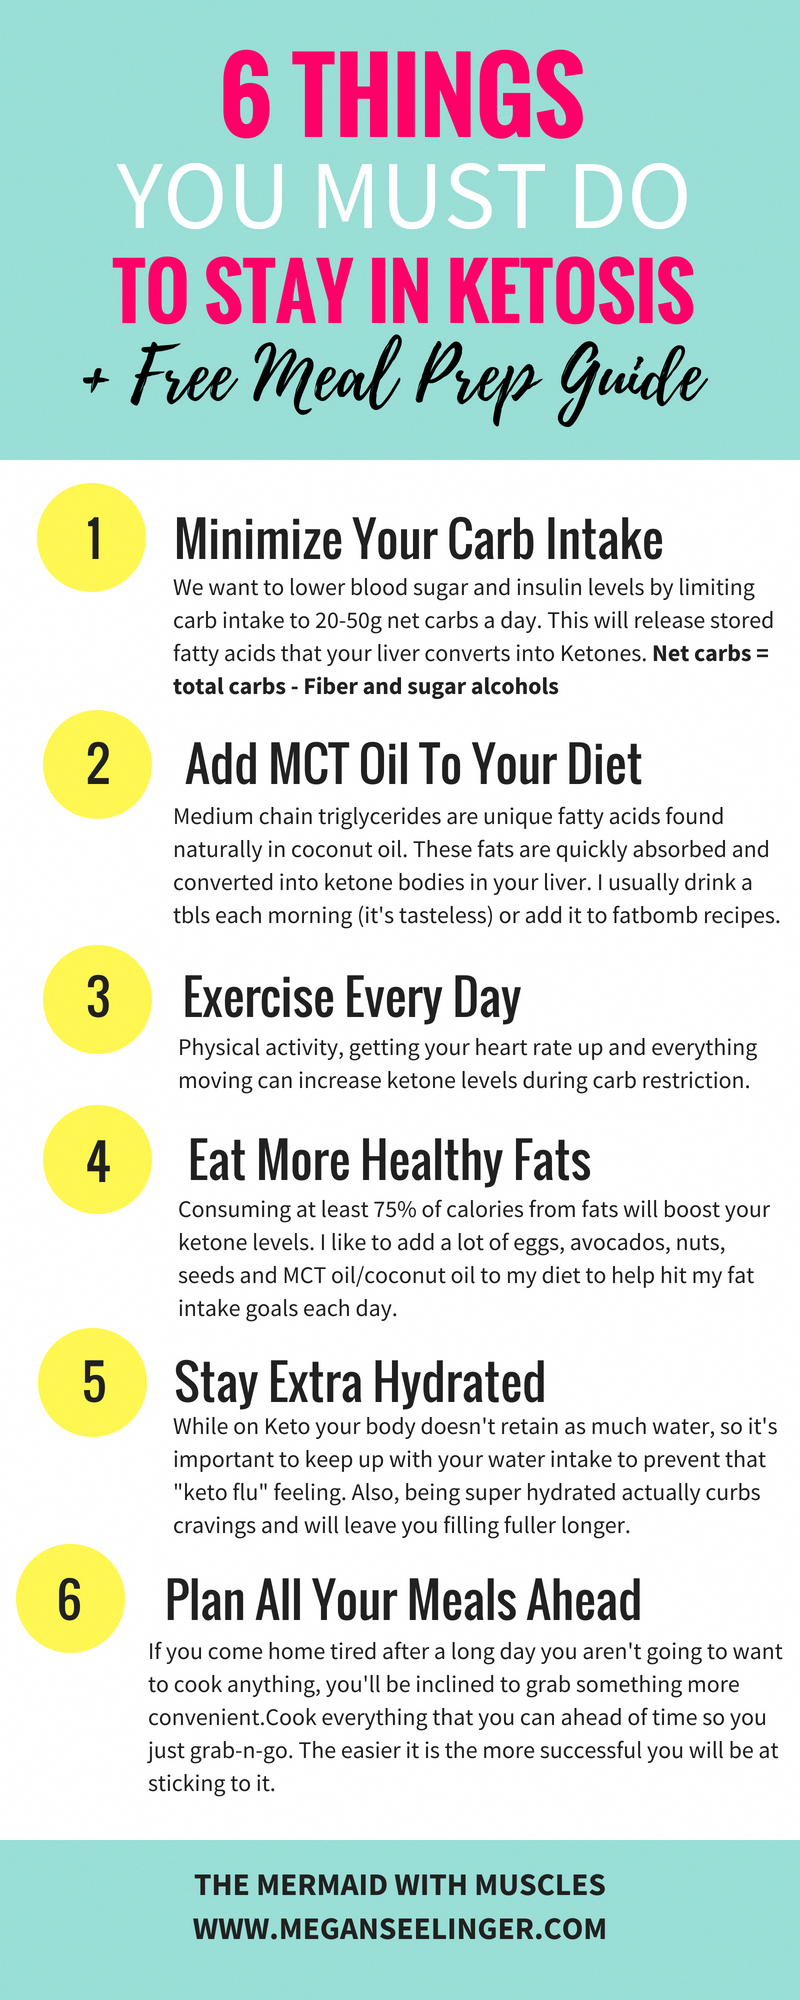 6 things you must do to stay in ketosis, a ketogenic diet for